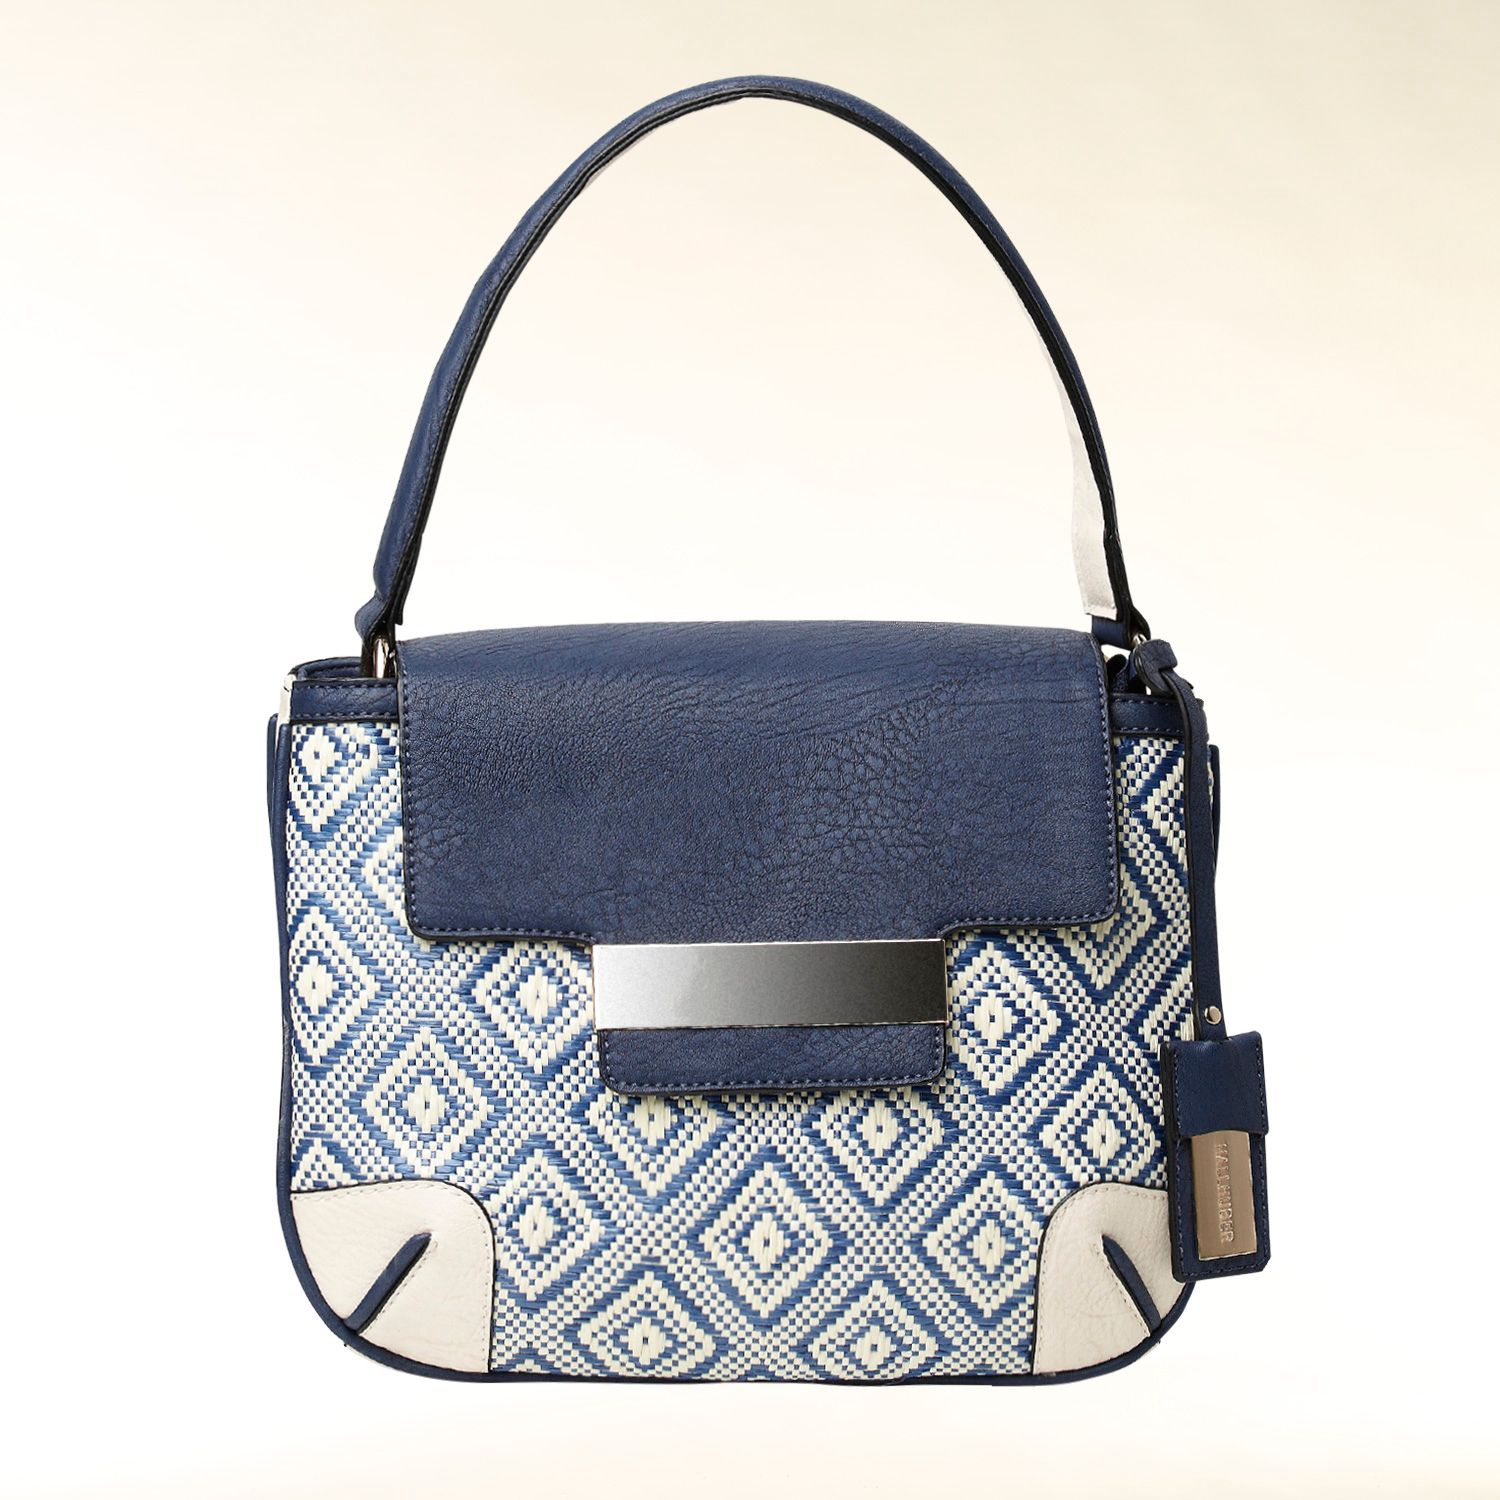 Fabric mix handbag